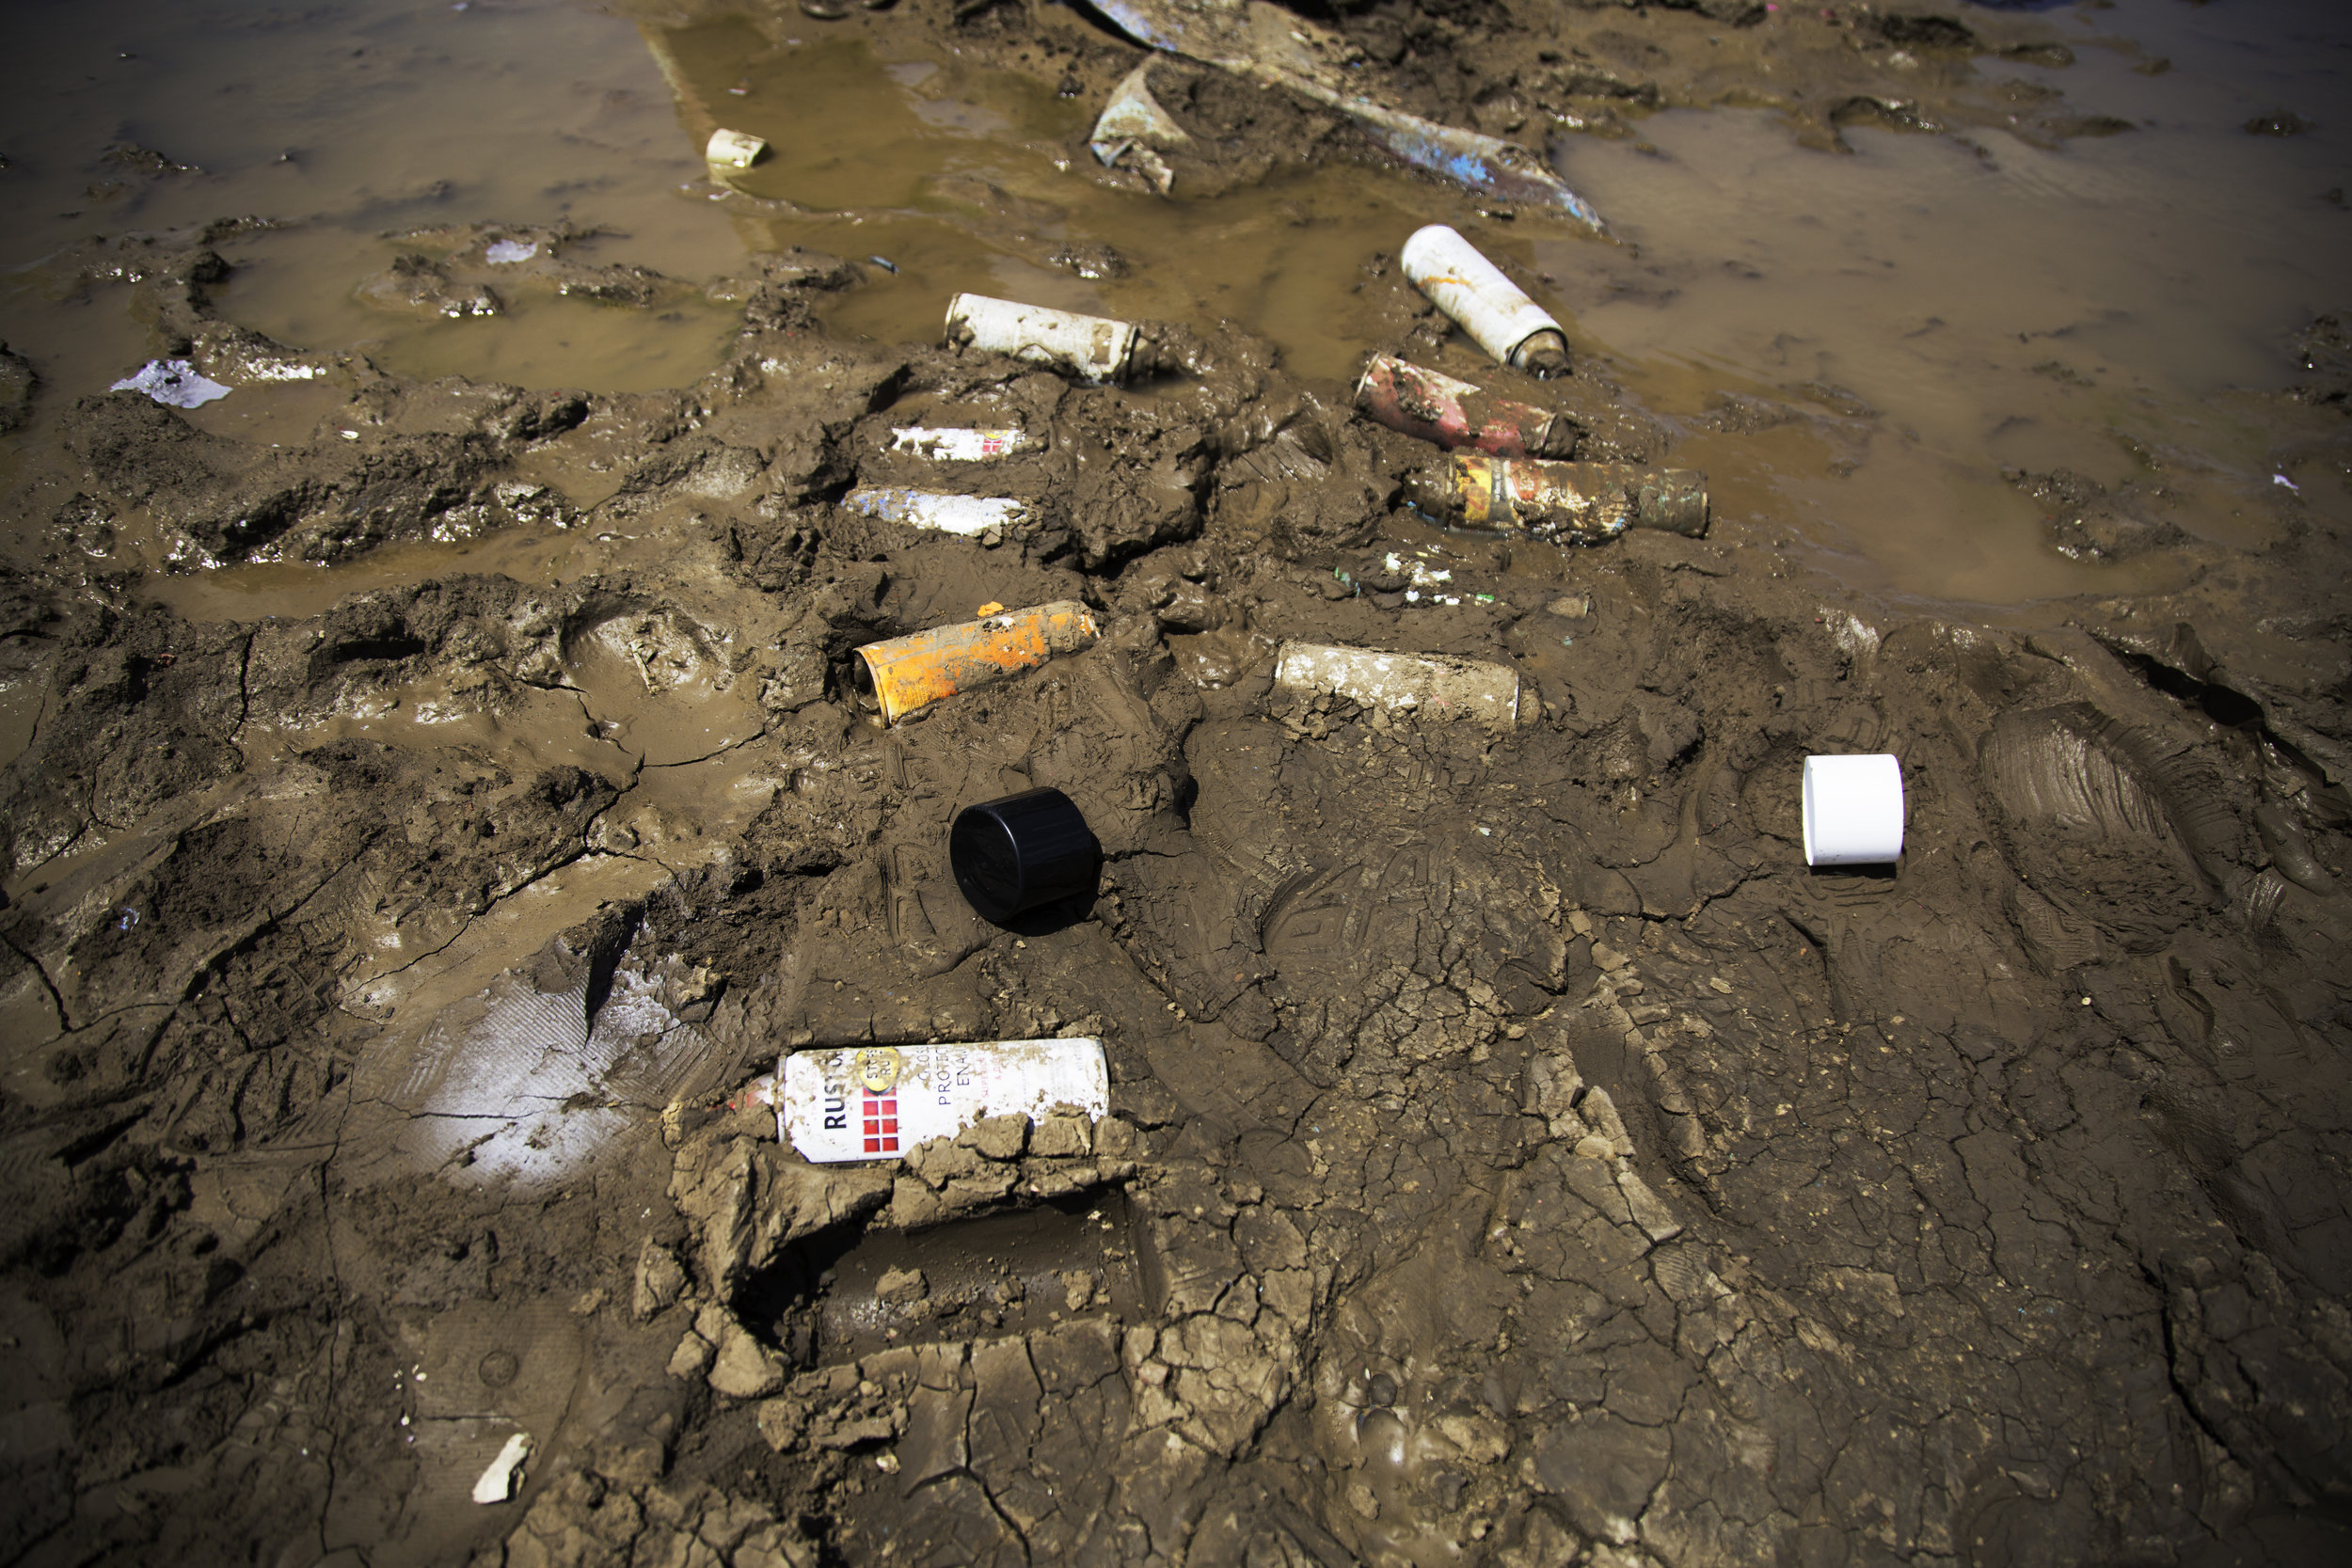 Spray paint cans are littered all over the ground, abandoned and half buried in the dirt and mud around the vehicles.